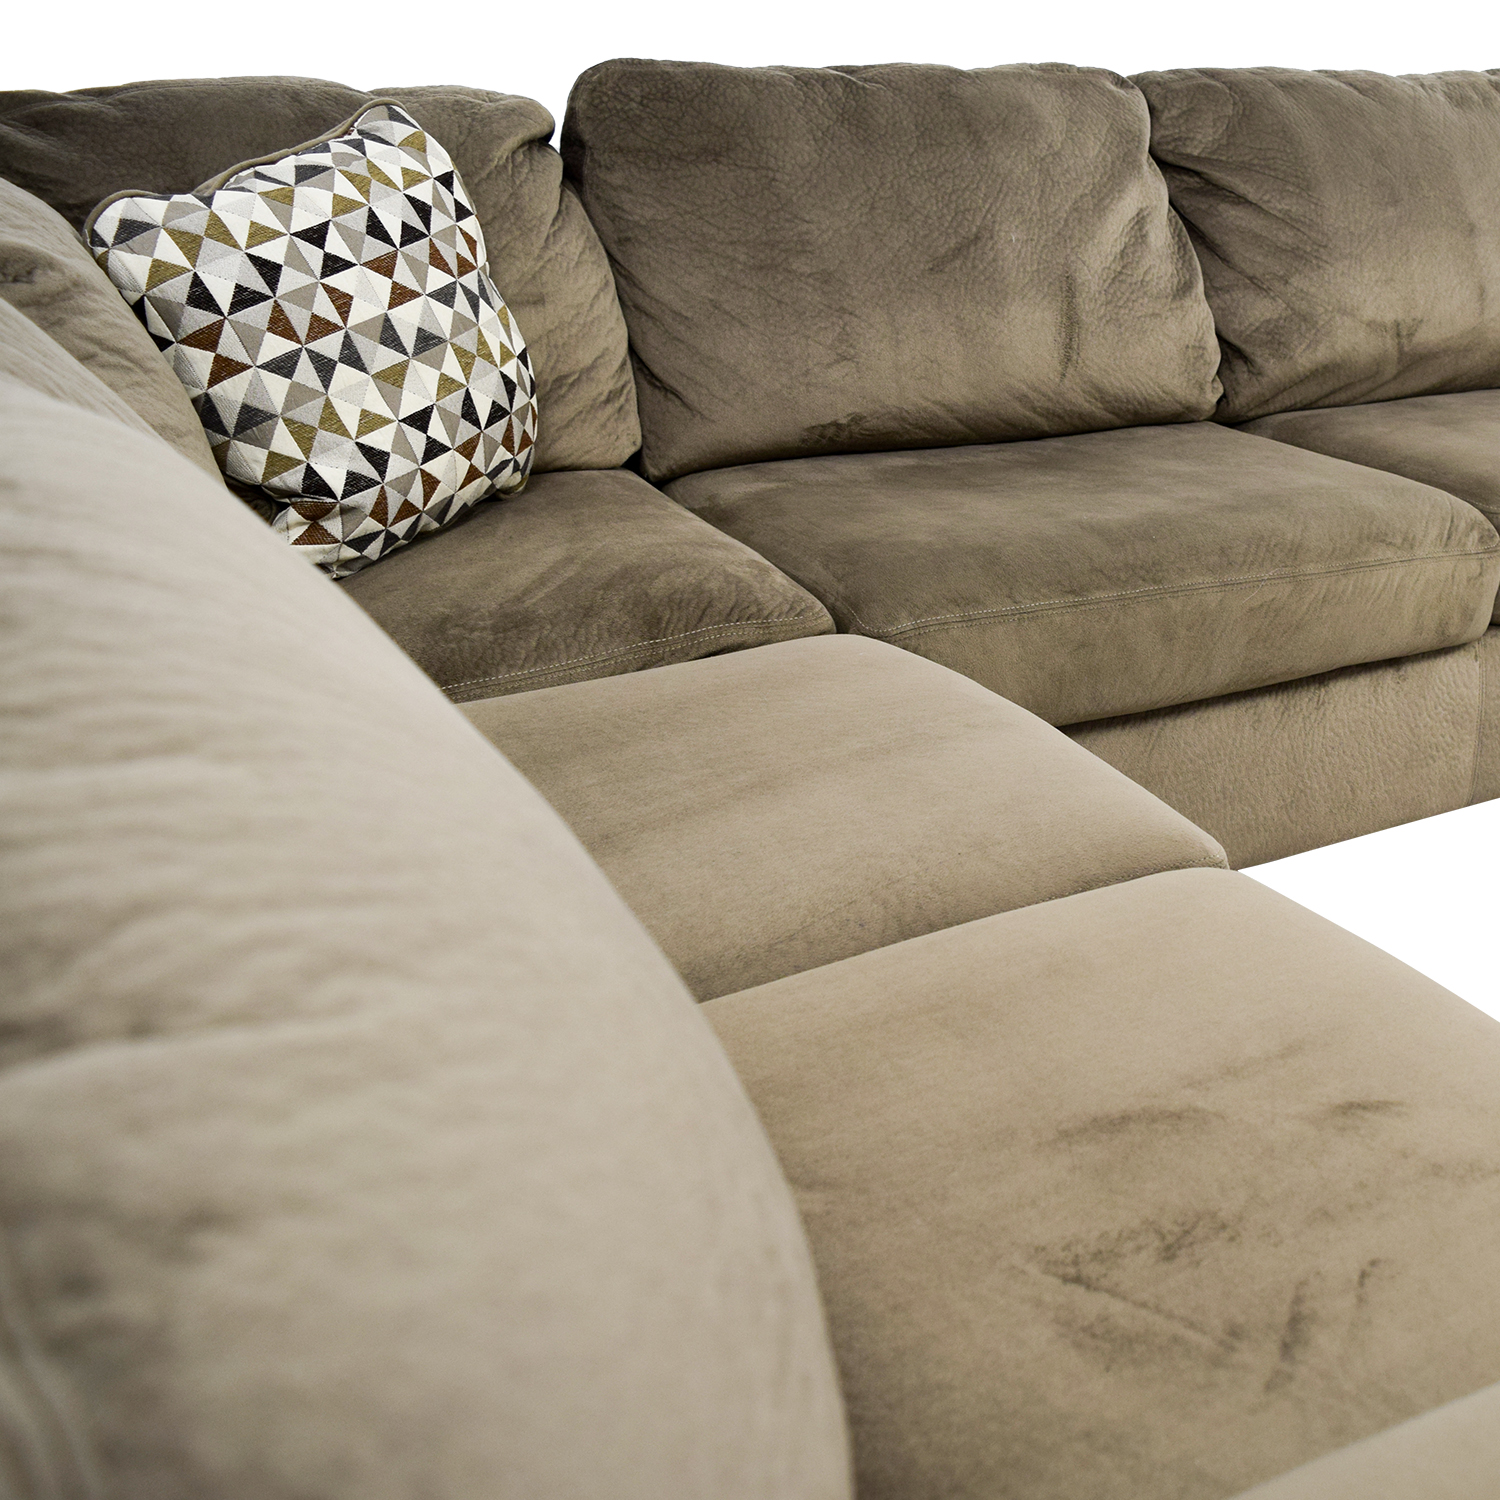 Strange 54 Off Ashley Furniture Ashley Furniture Jessa Place Sectional Sofas Alphanode Cool Chair Designs And Ideas Alphanodeonline